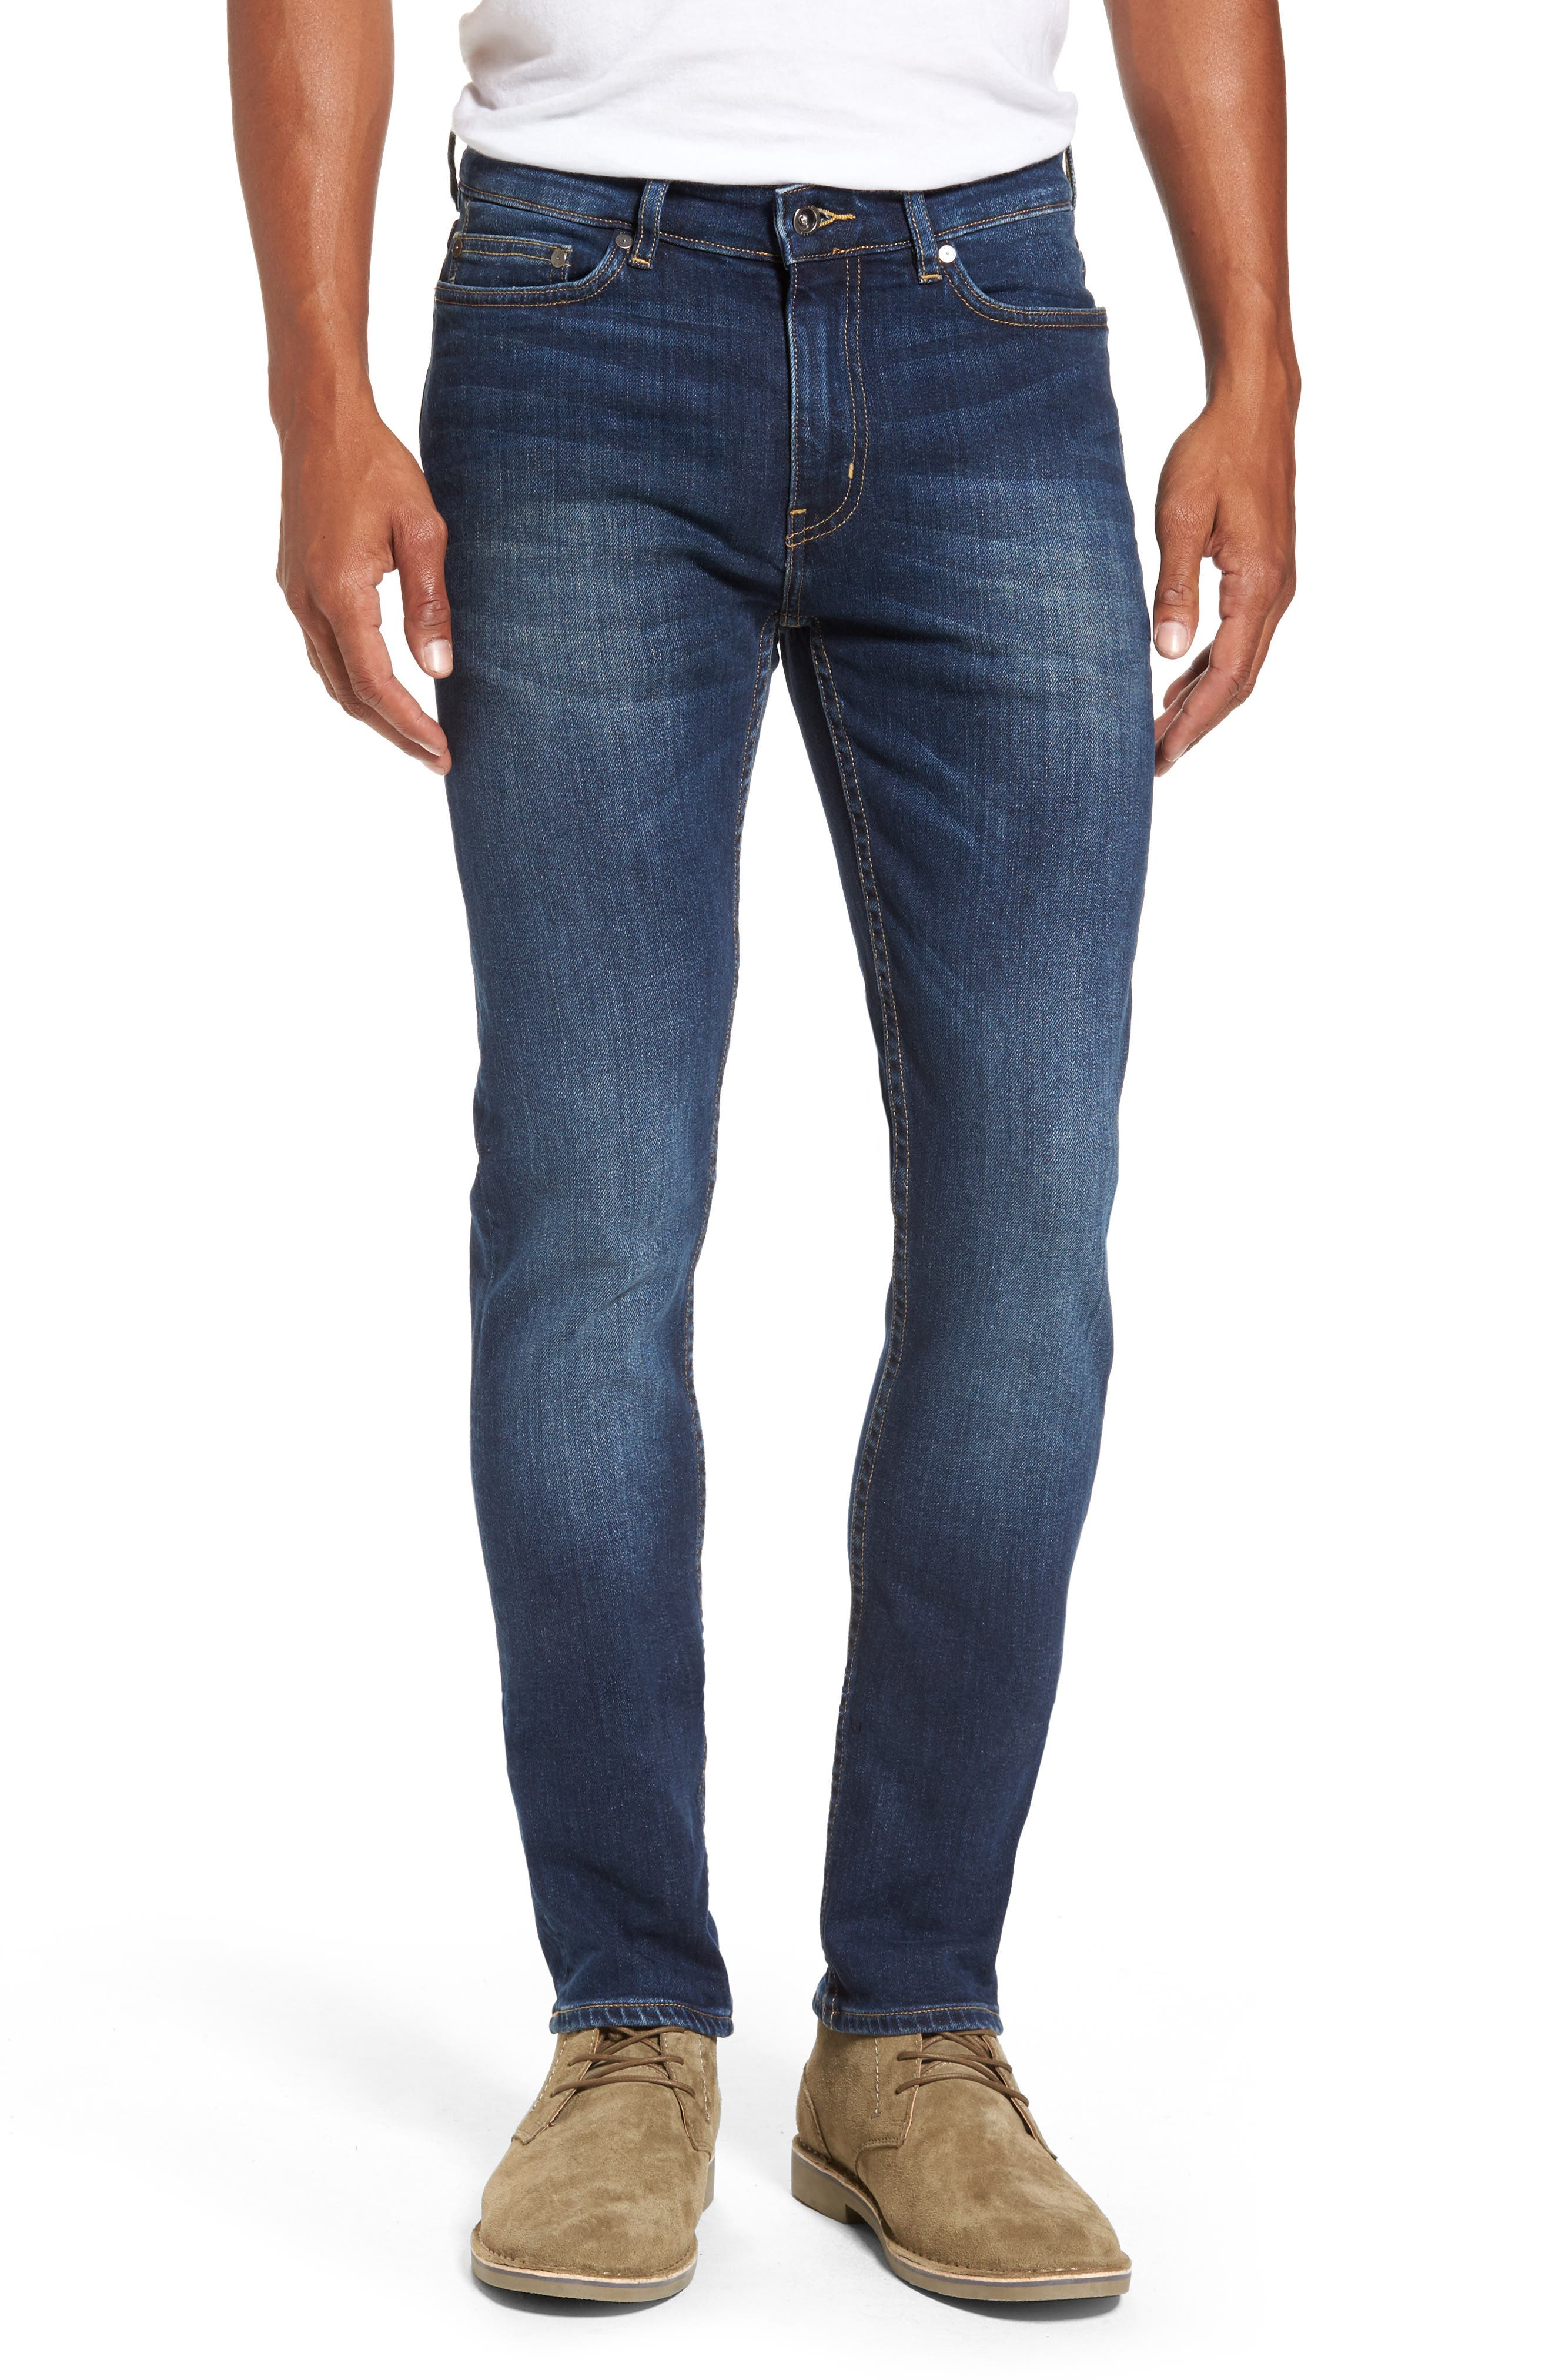 Alternate Image 1 Selected - Rodd & Gunn Derbyshire Slim Fit Jeans